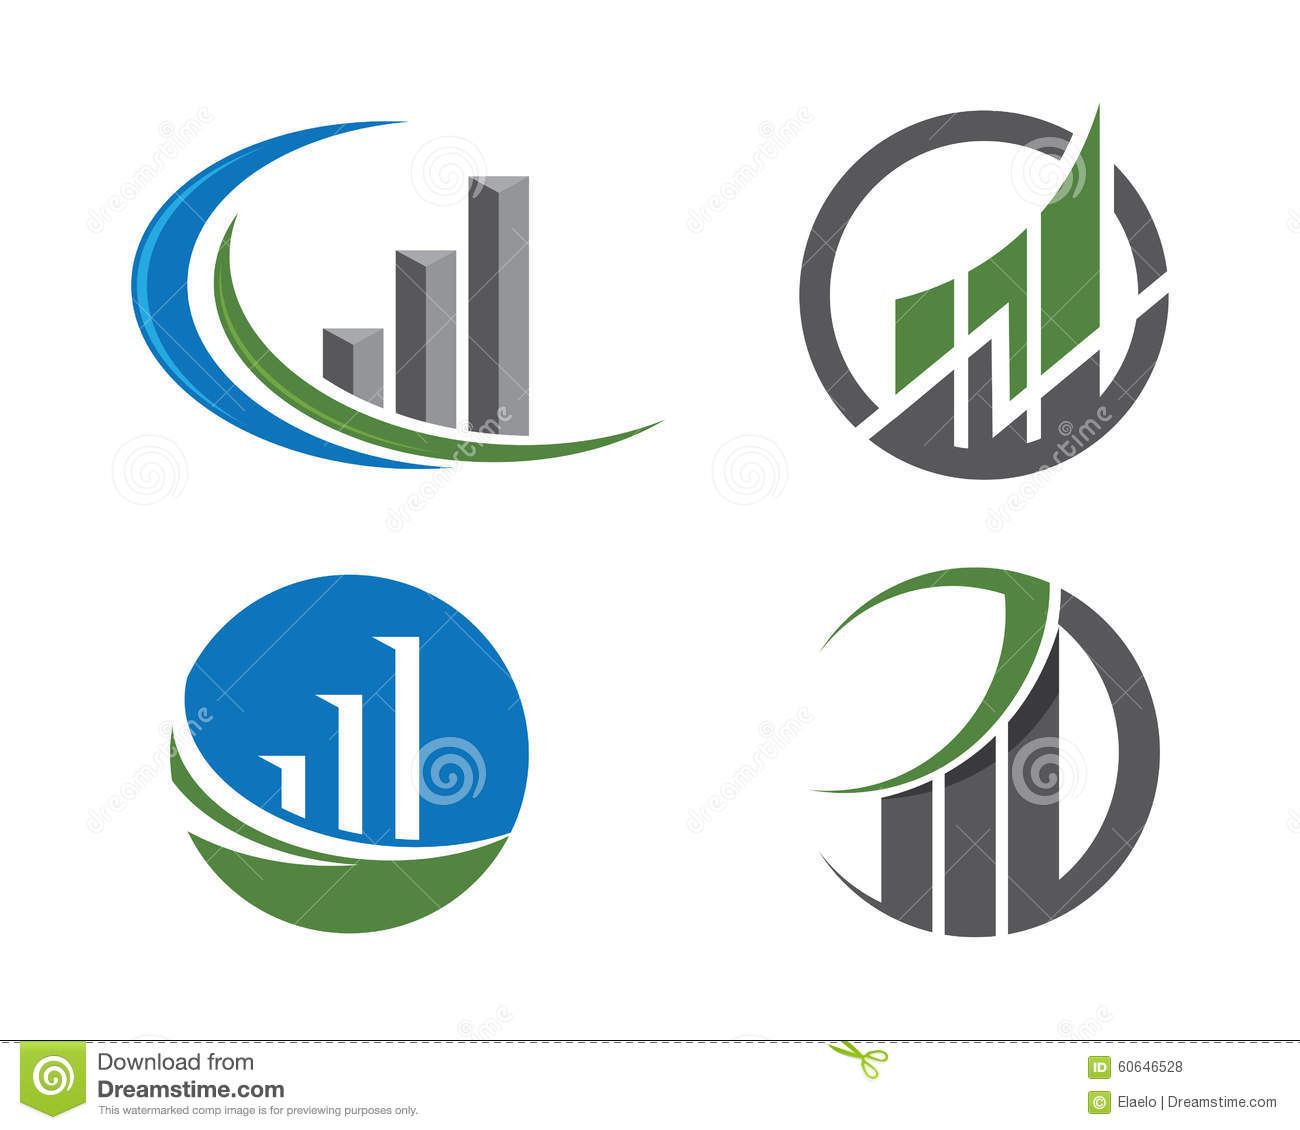 finance-logo-success-other-company-60646528.jpg